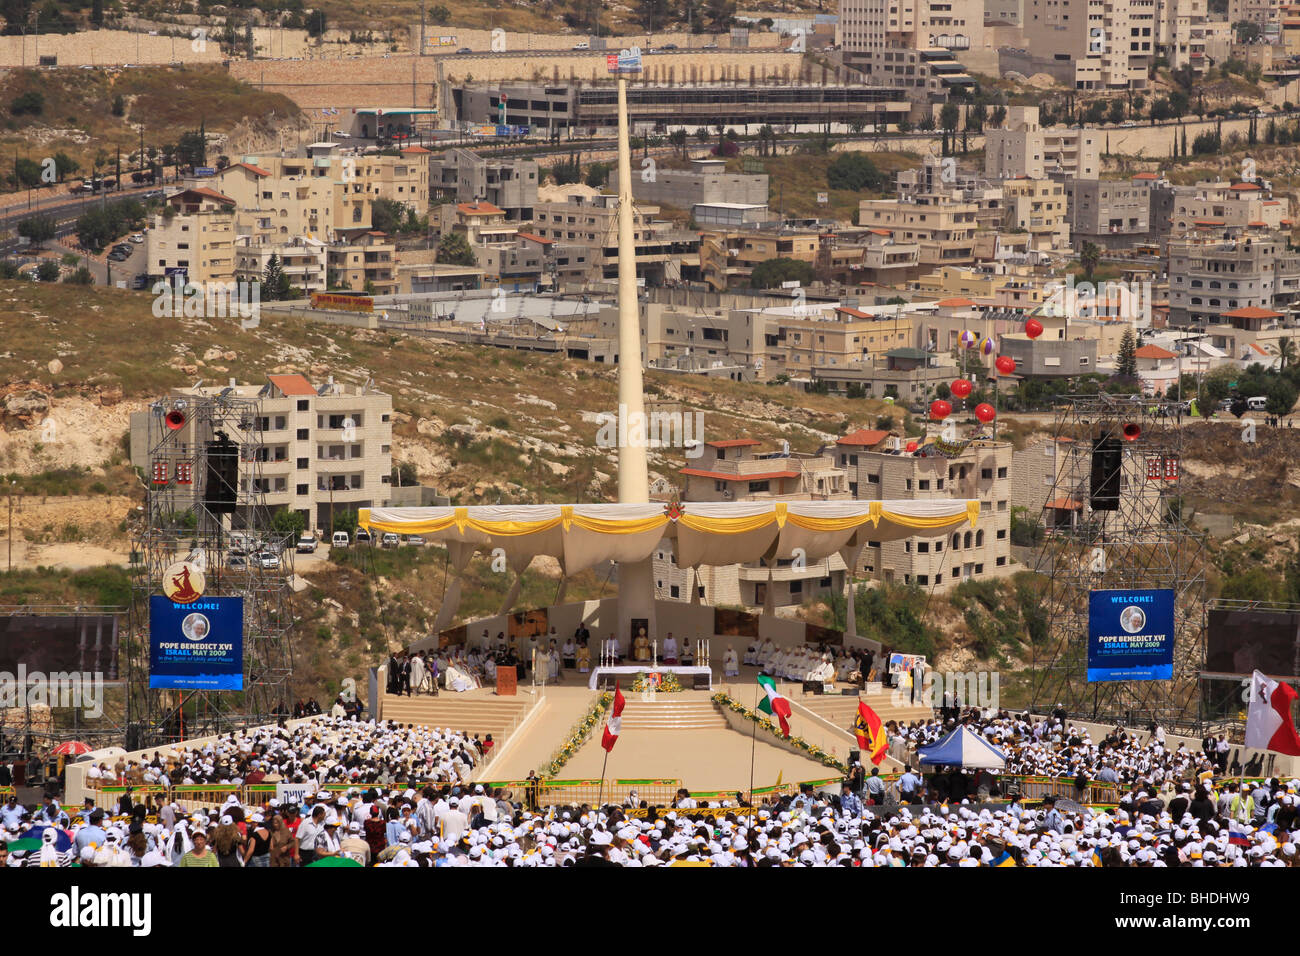 Israel, Galilee, the Pontifical Mass celebrated by His Holiness Pope Benedict XVI on the Mount of the Precipice Stock Photo